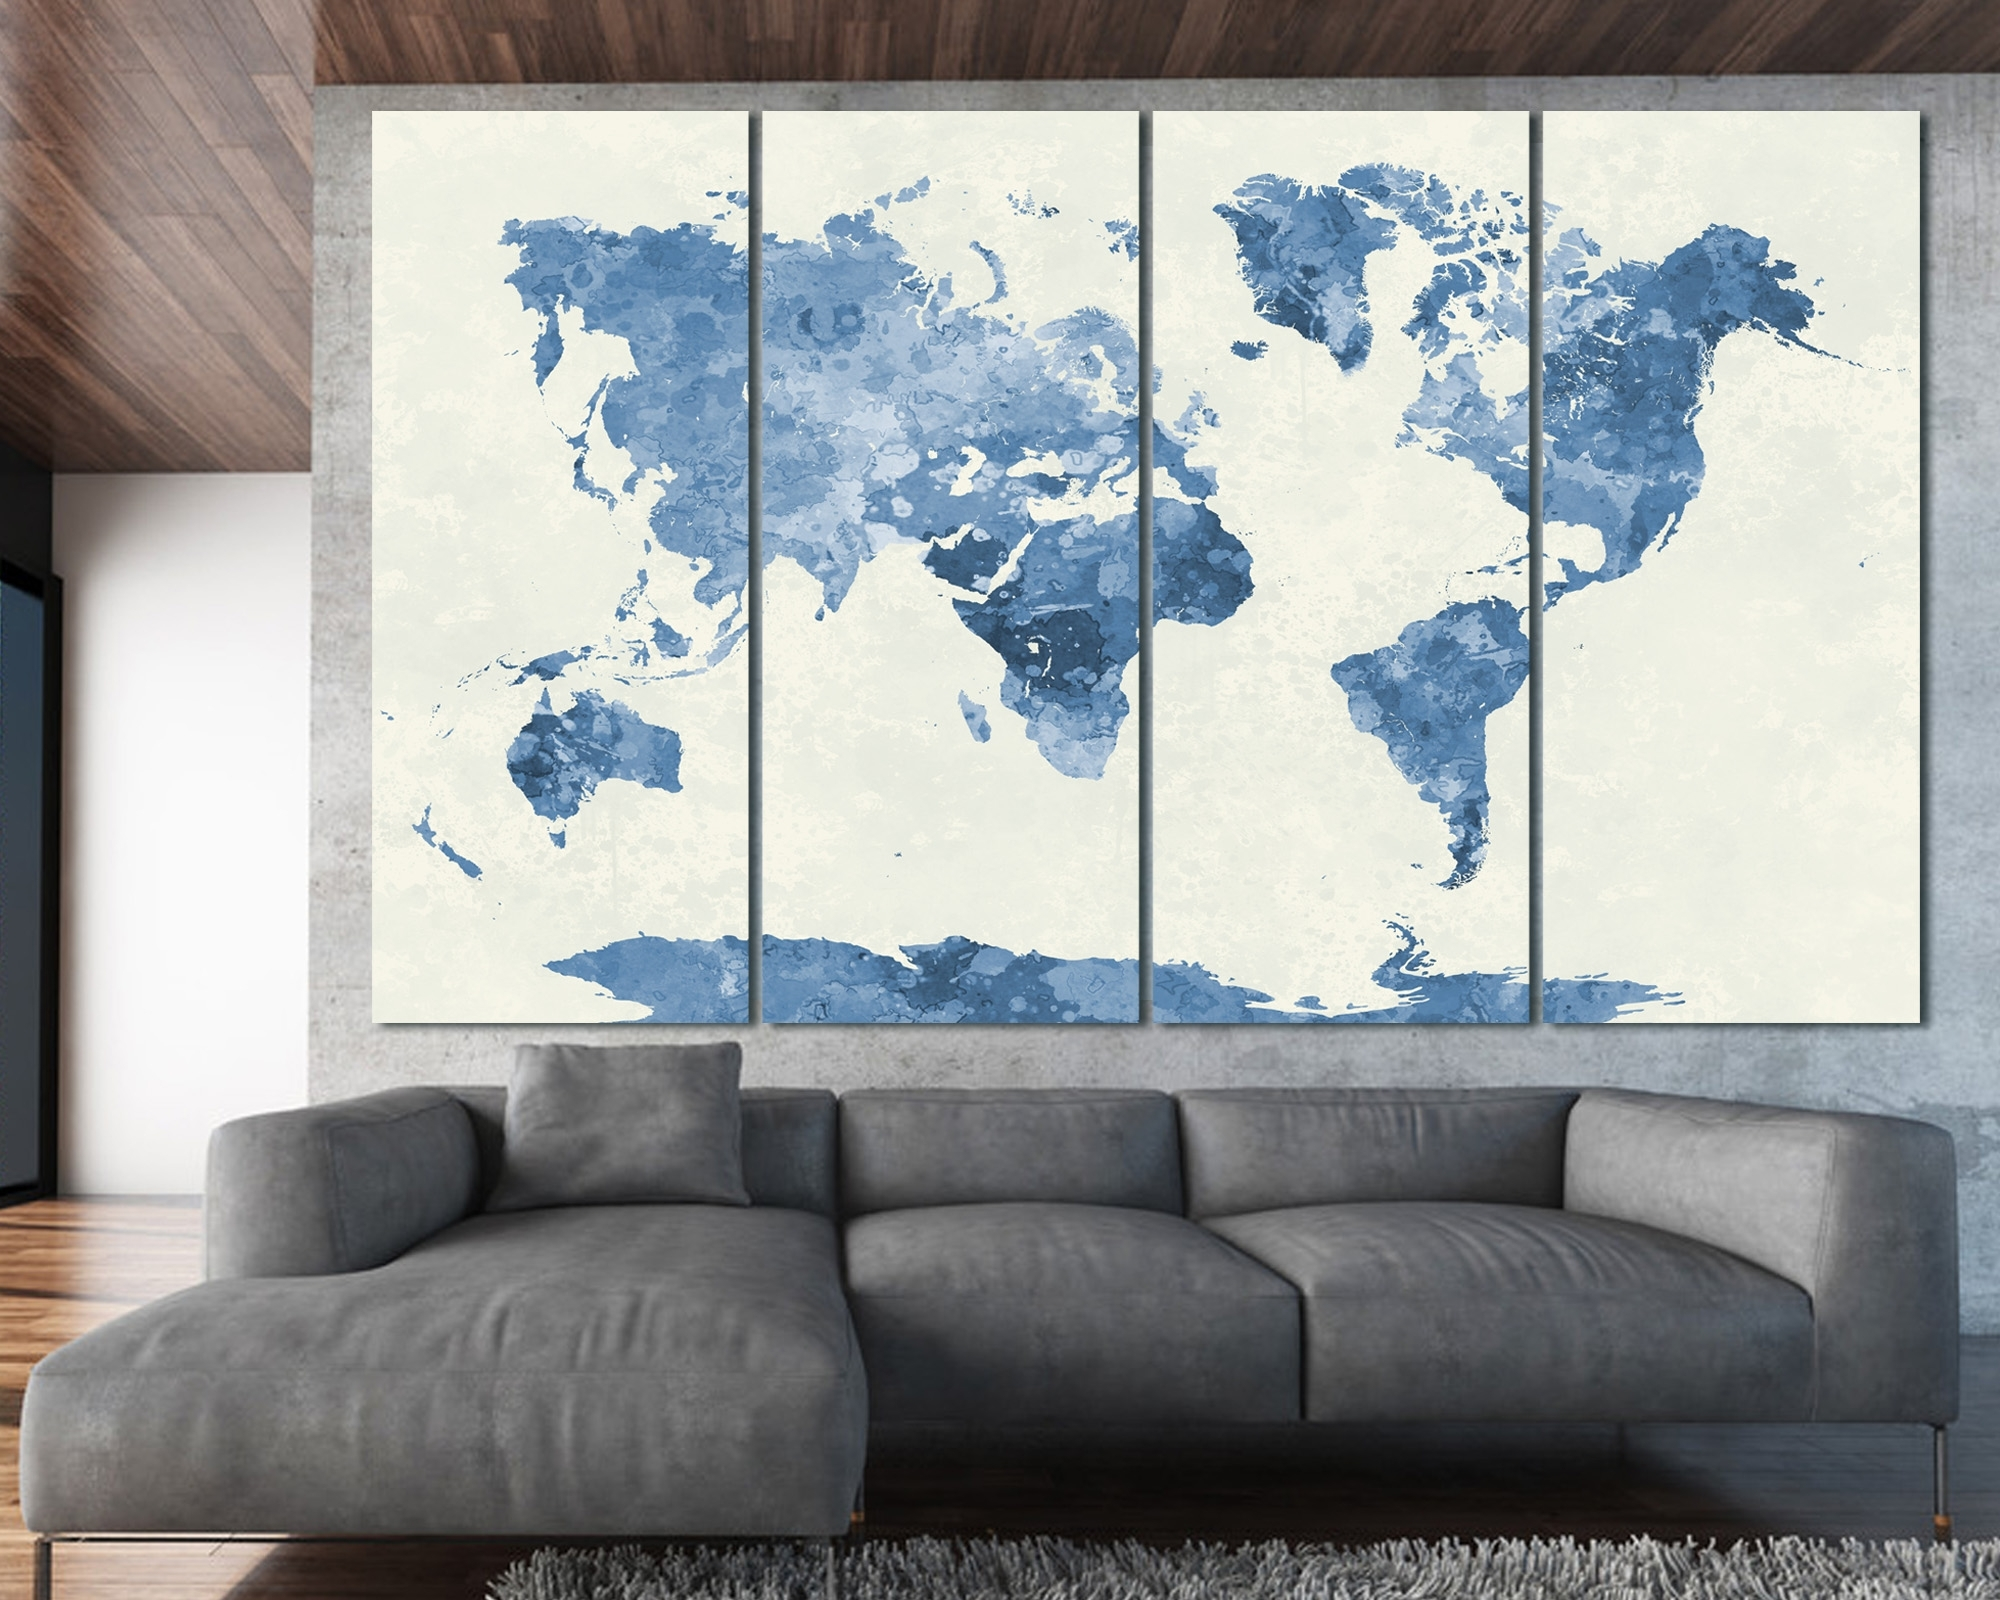 Navy Blue Watercolor World Map Print At Texelprintart Within Most Current Navy Blue Wall Art (View 10 of 15)